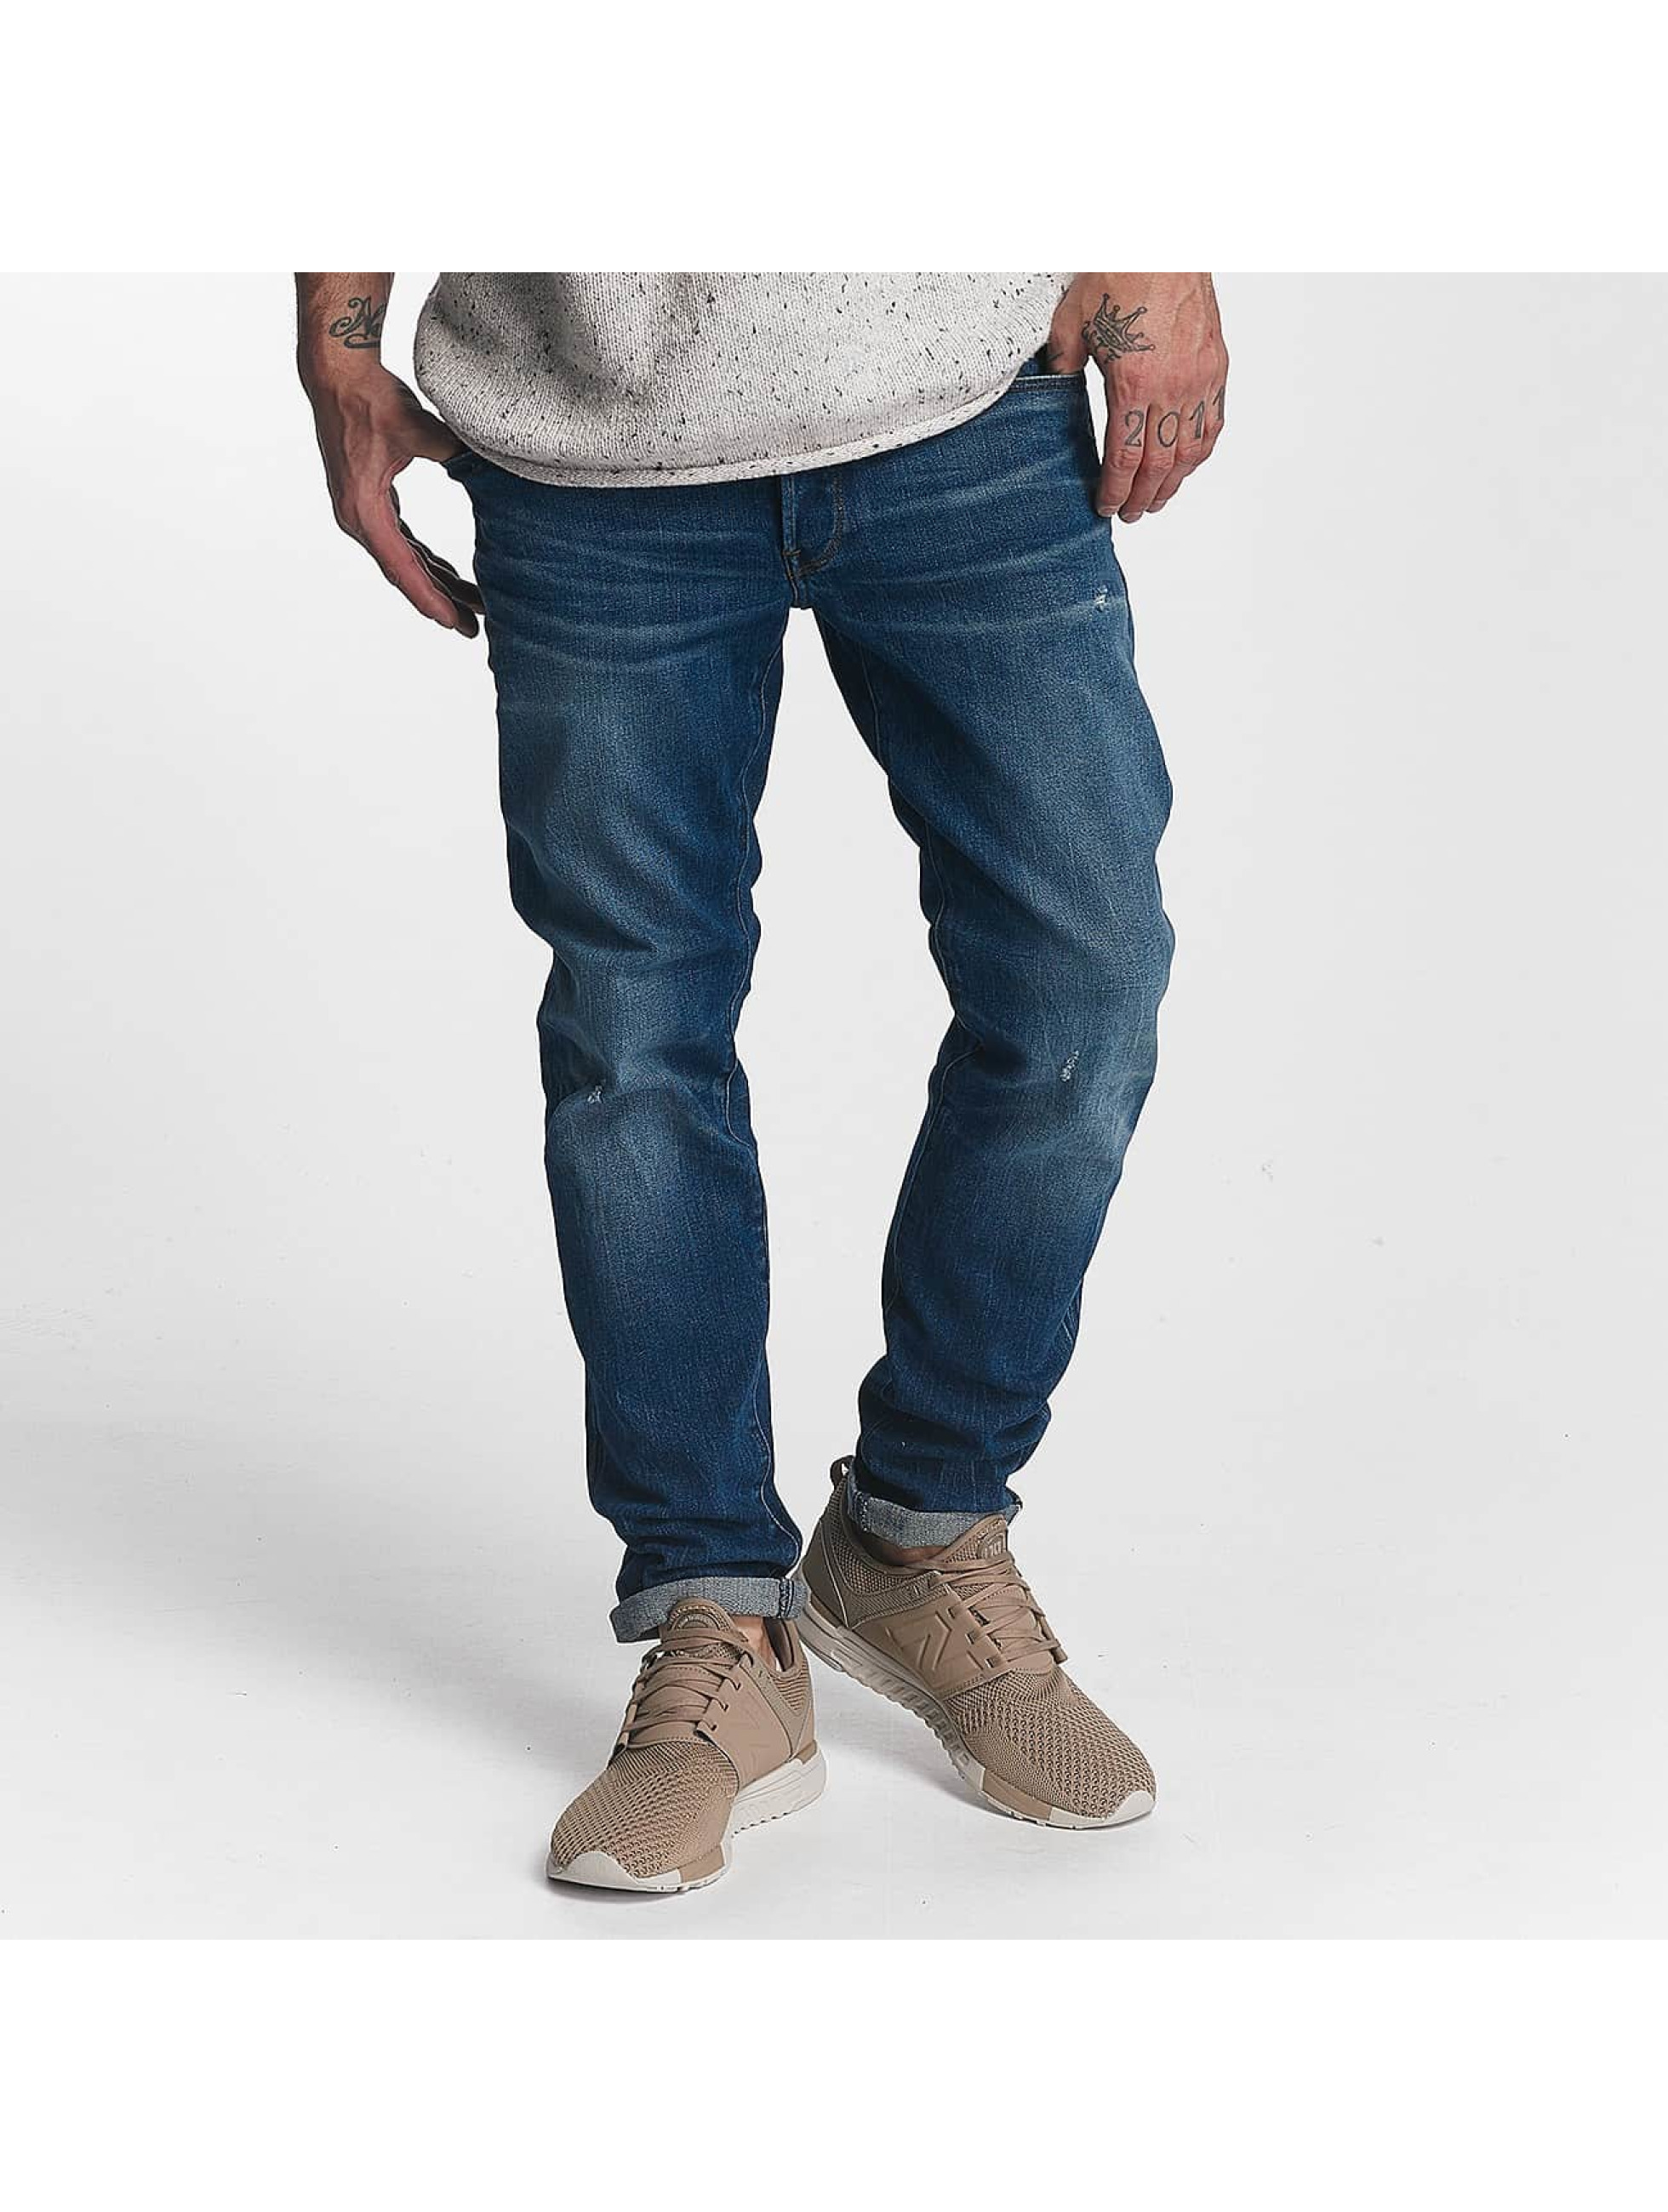 G-Star Männer Slim Fit Jeans 3301 RL in blau